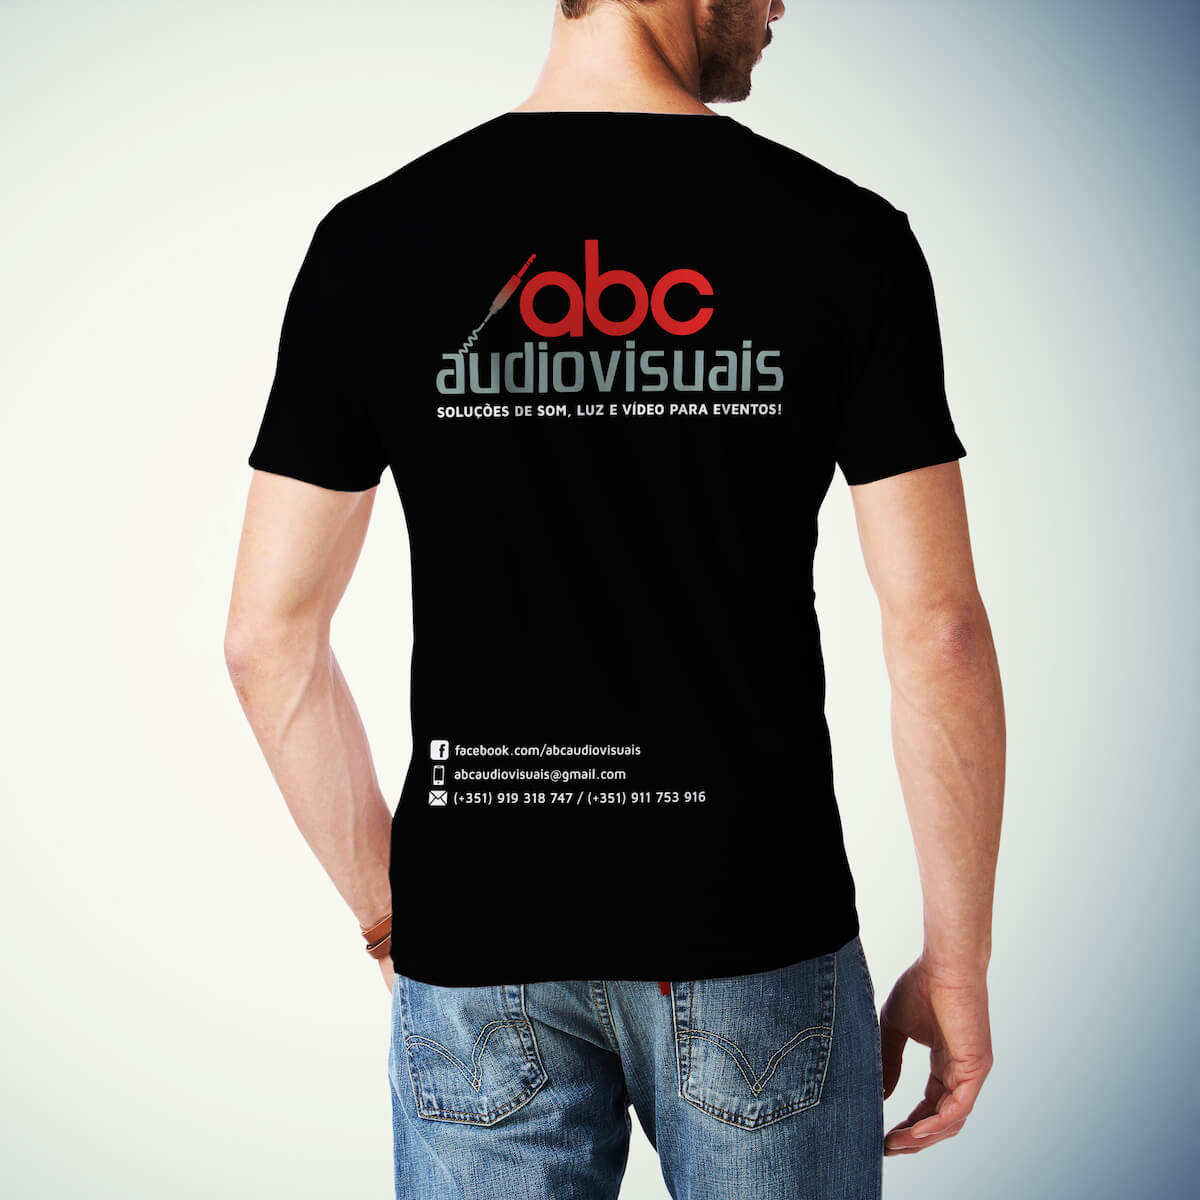 abc audivisuais tshirt